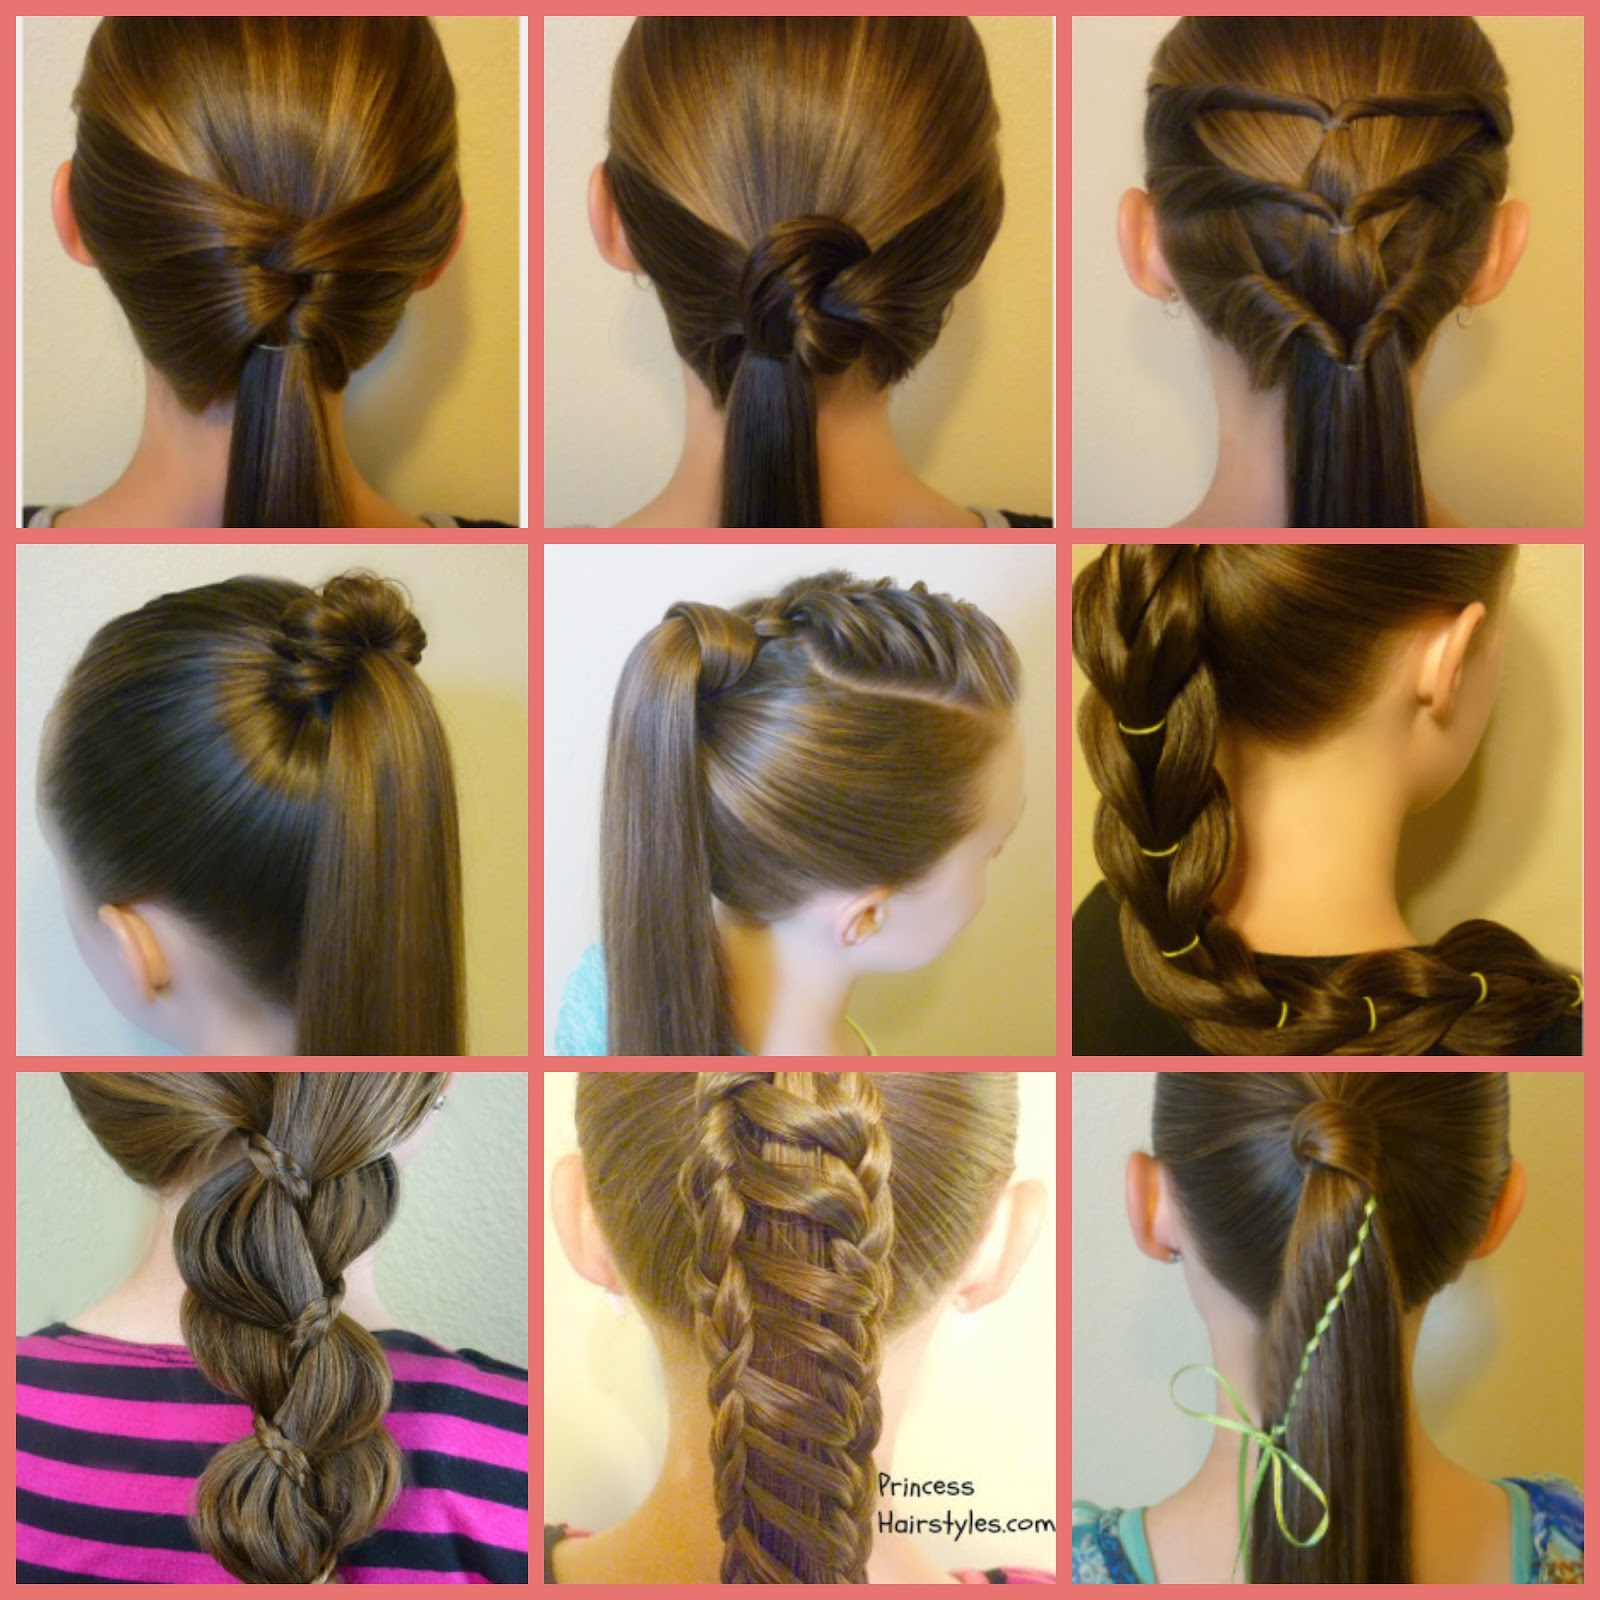 10 easy ponytail hairstyles - hairstyles for girls - princess hairstyles